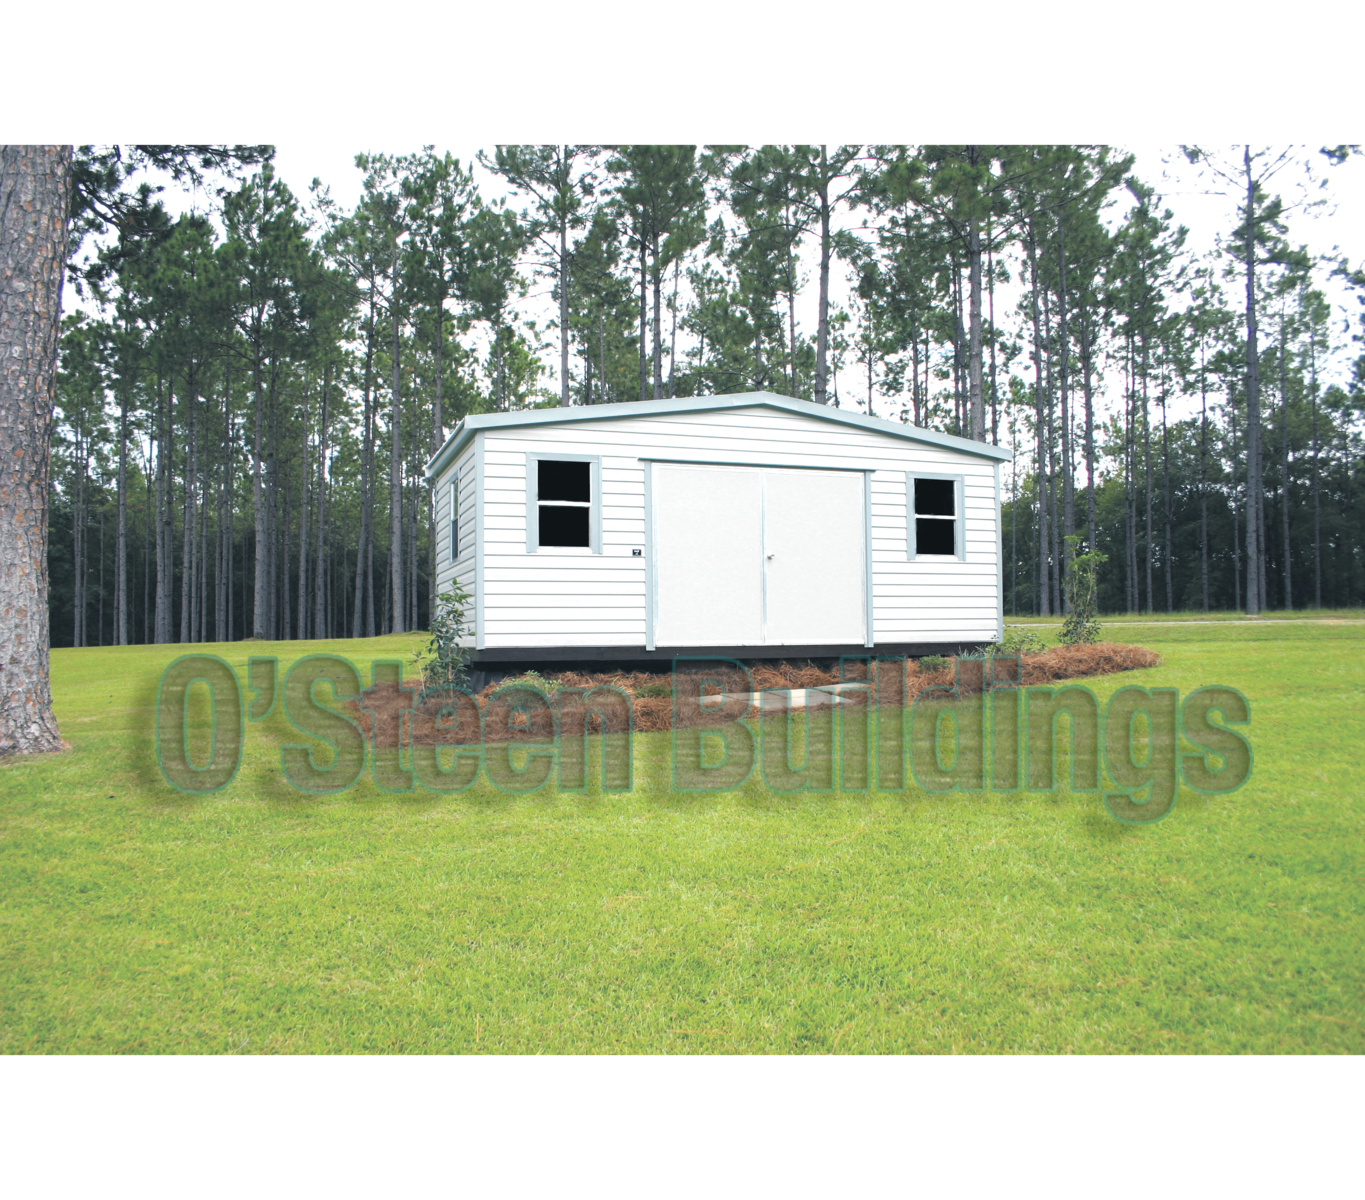 Valdosta Portable Buildings